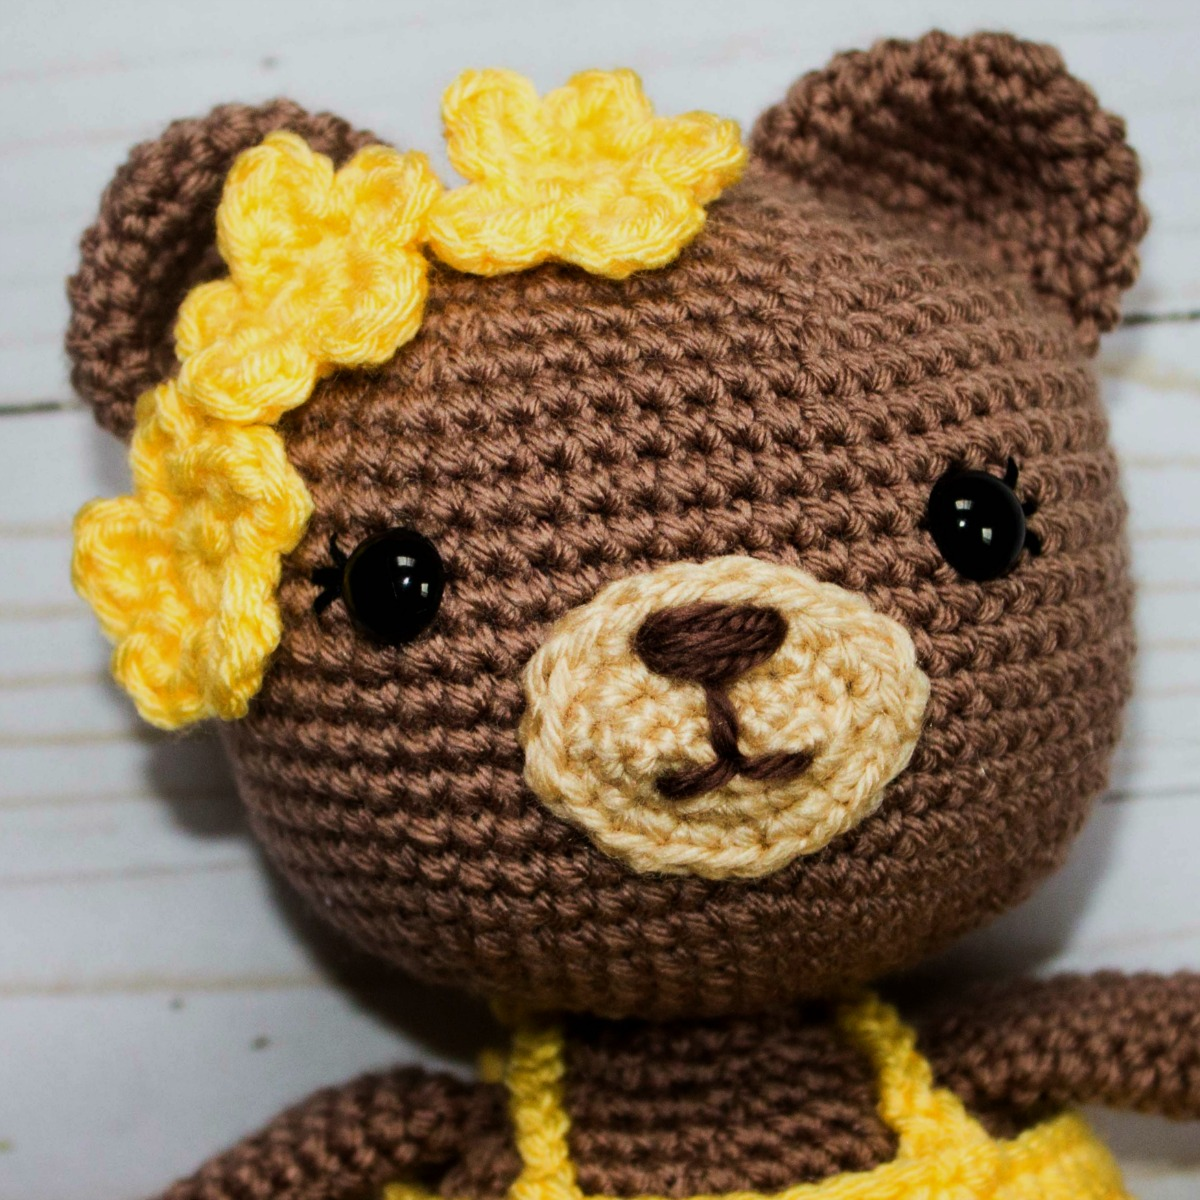 Crochet Teddy Bear Pattern | Crochet teddy bear pattern, Crochet ... | 1200x1200